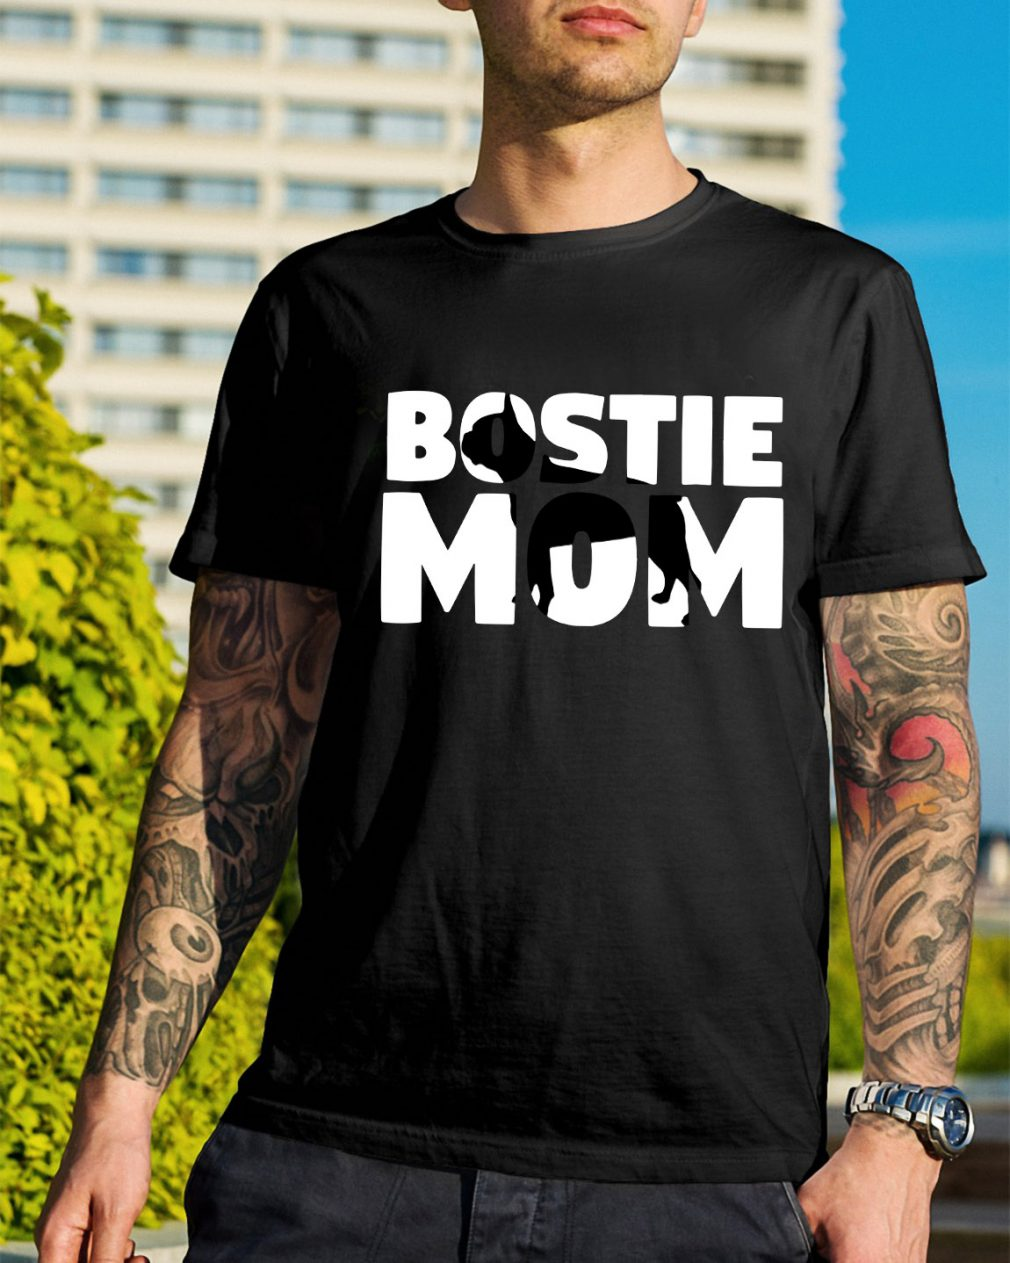 Bostie mom shirt